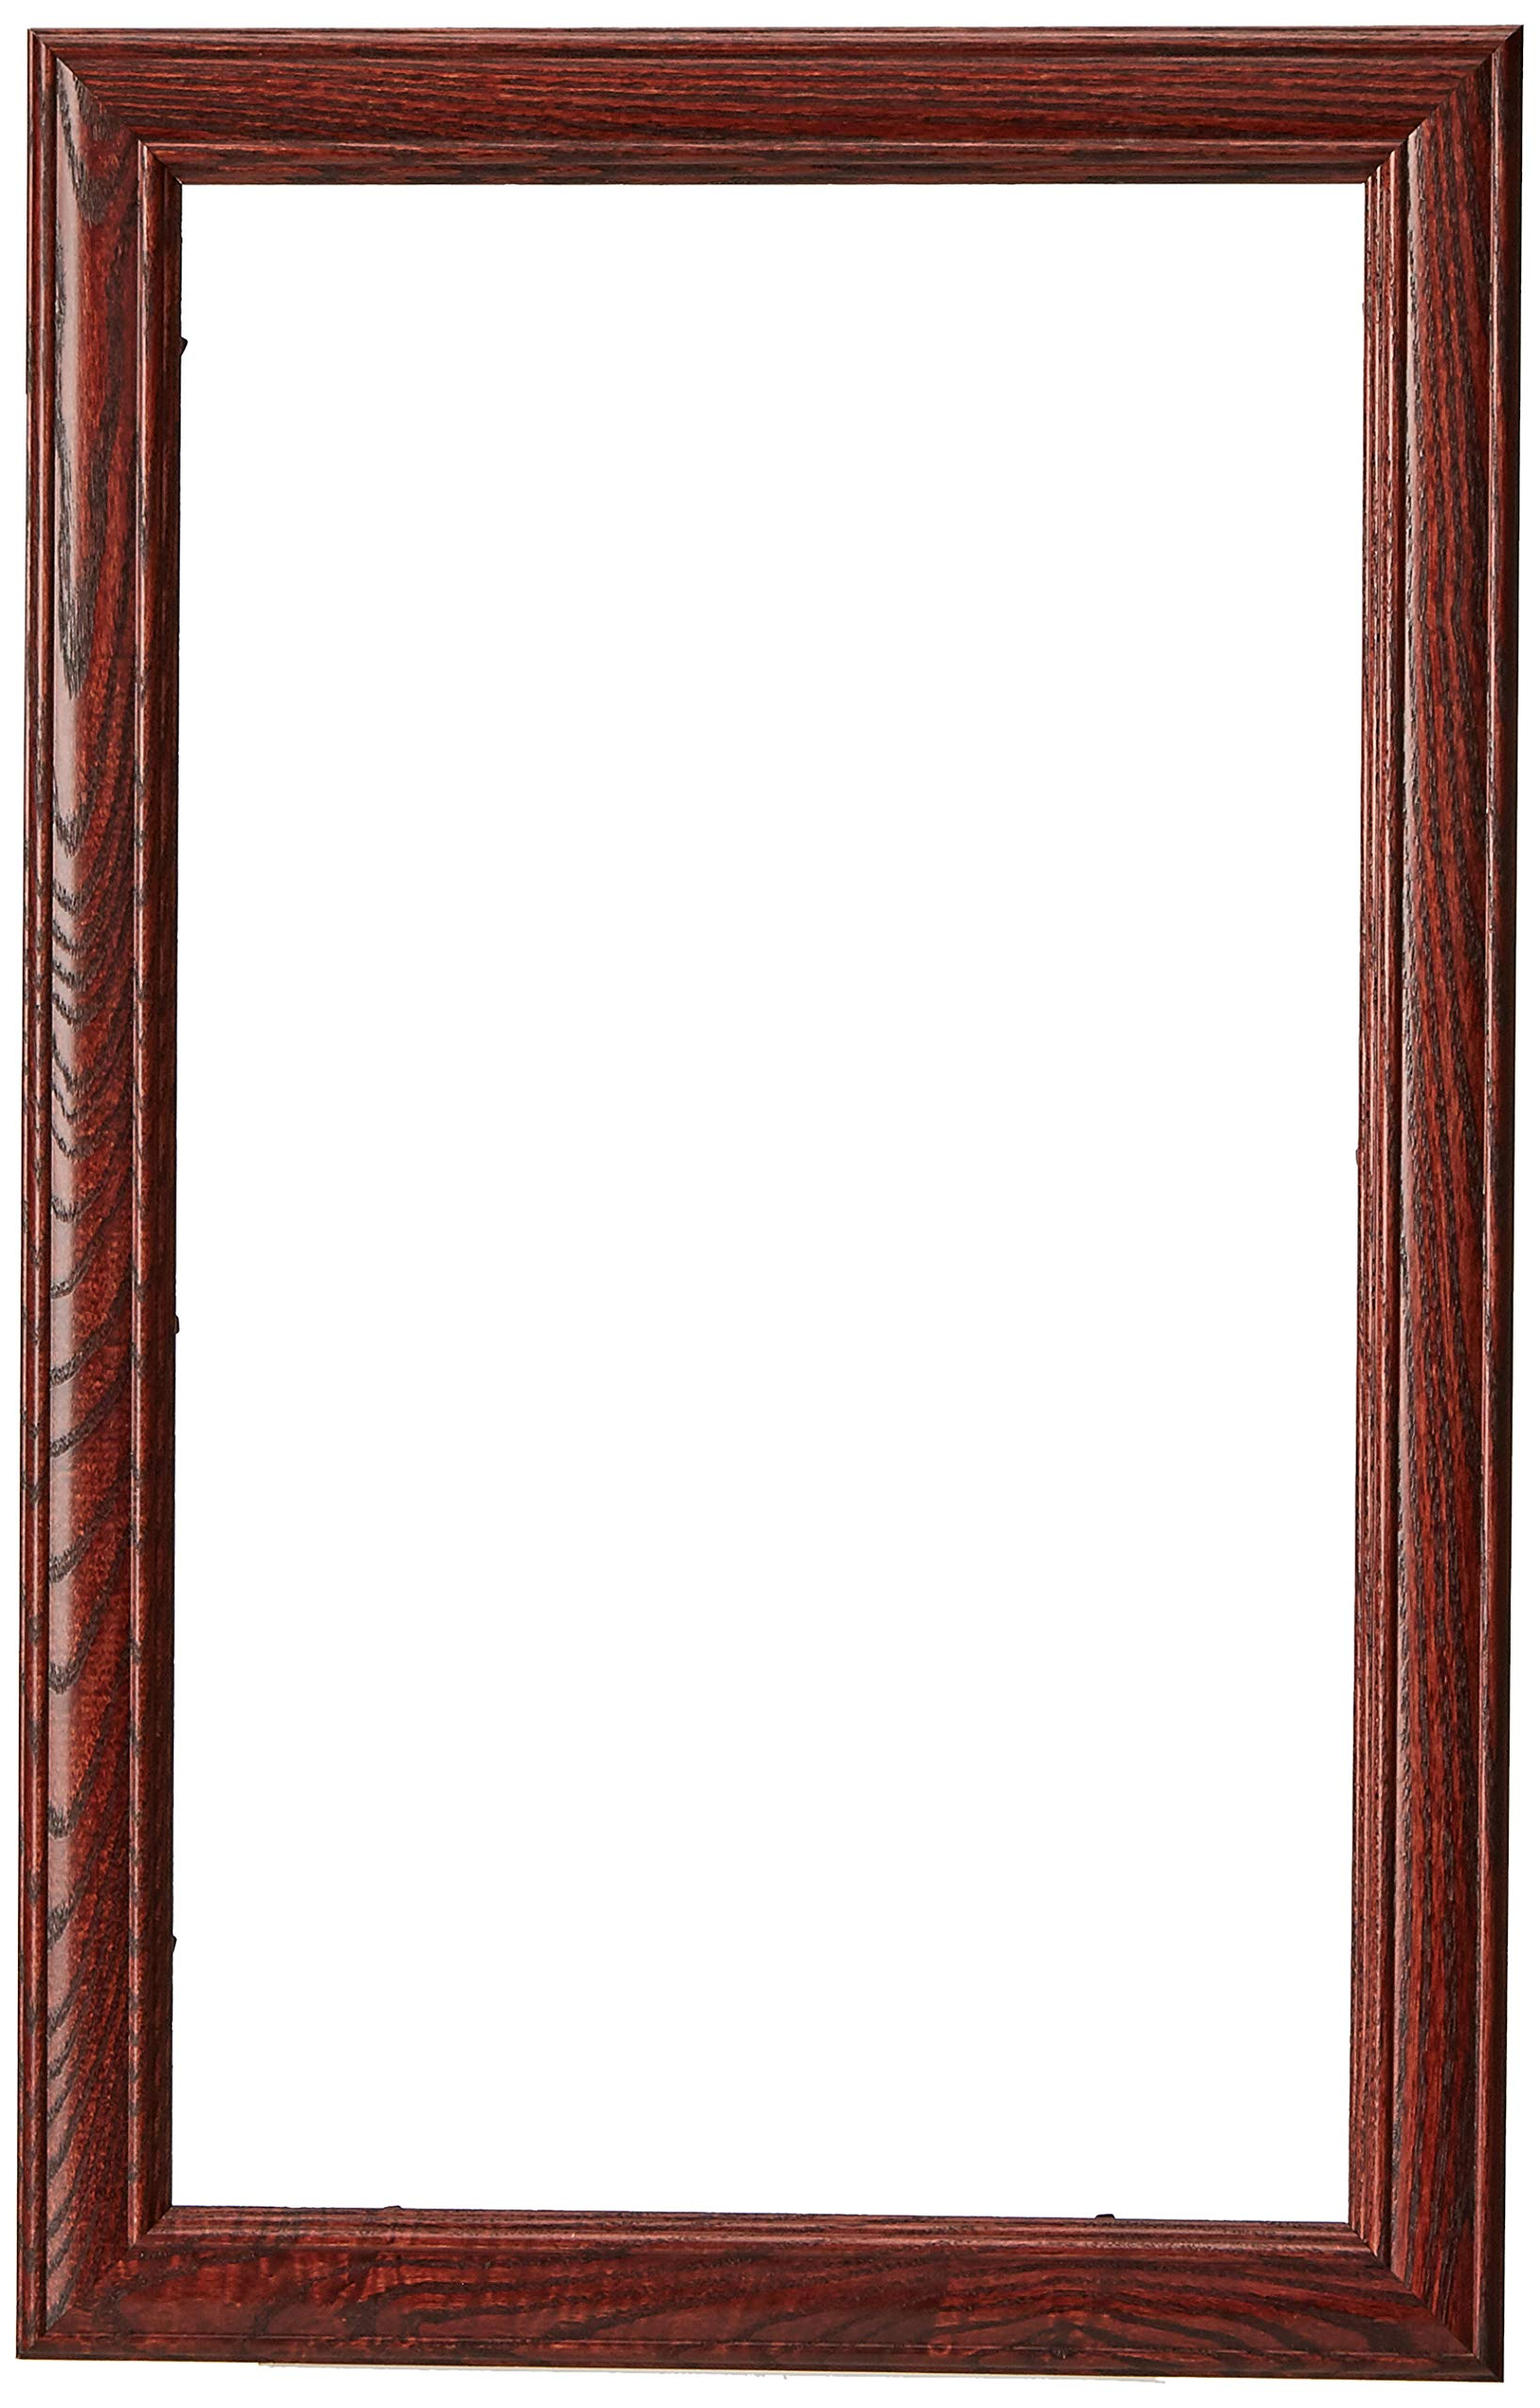 ArtToFrames 10x17 inch Cherry stain on Solid Red Oak Wood Picture Frame, 2WOM0066-59504-YCHY-10x17